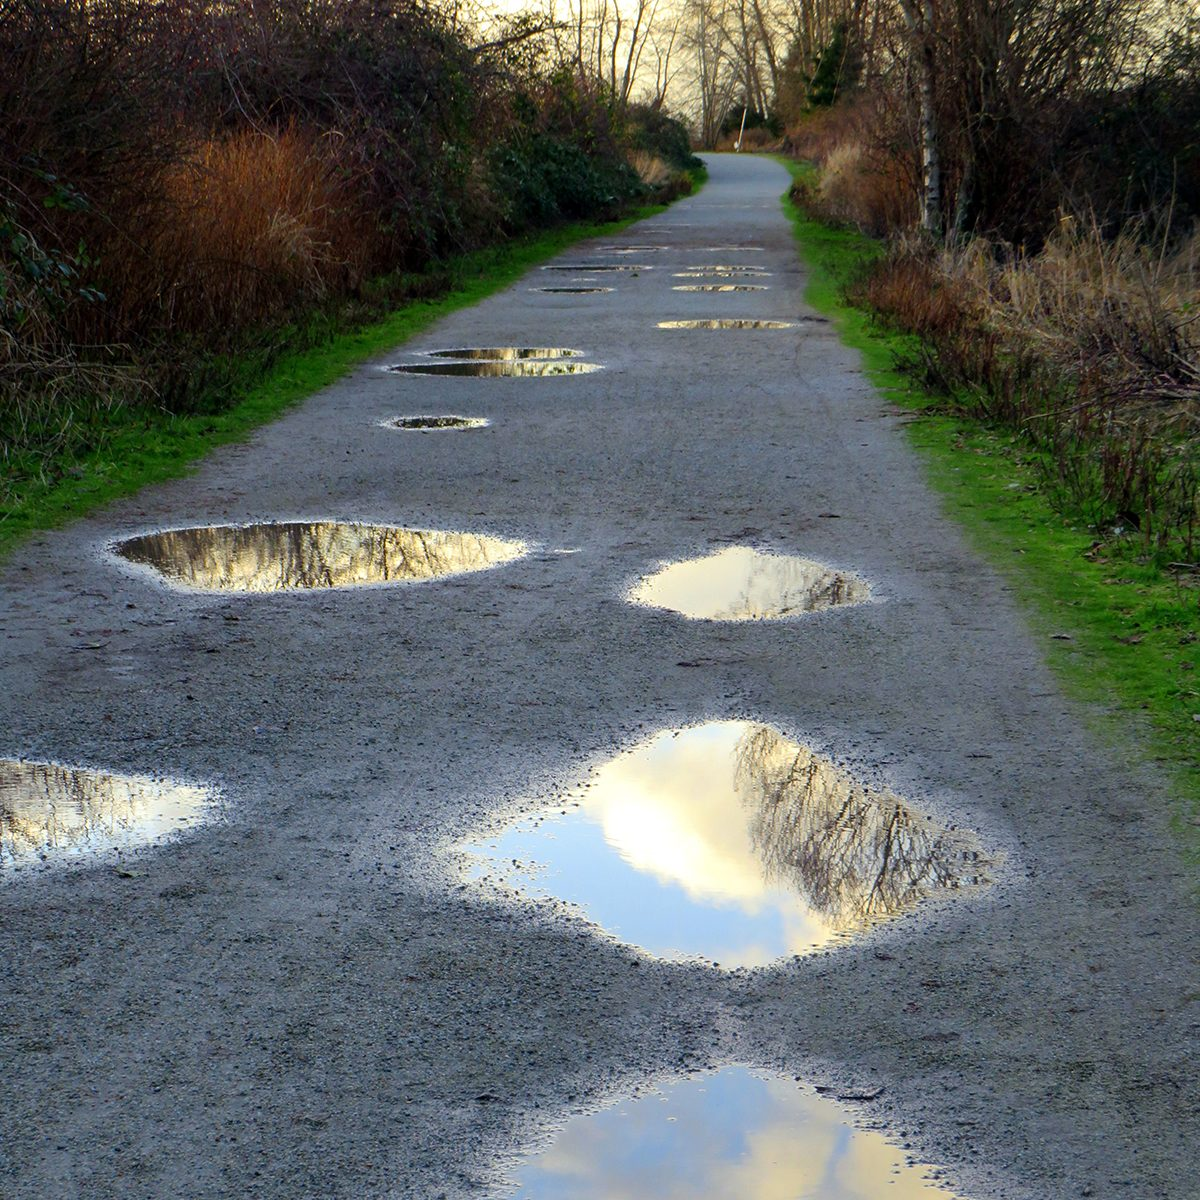 My Happy Place - lane filled with puddles